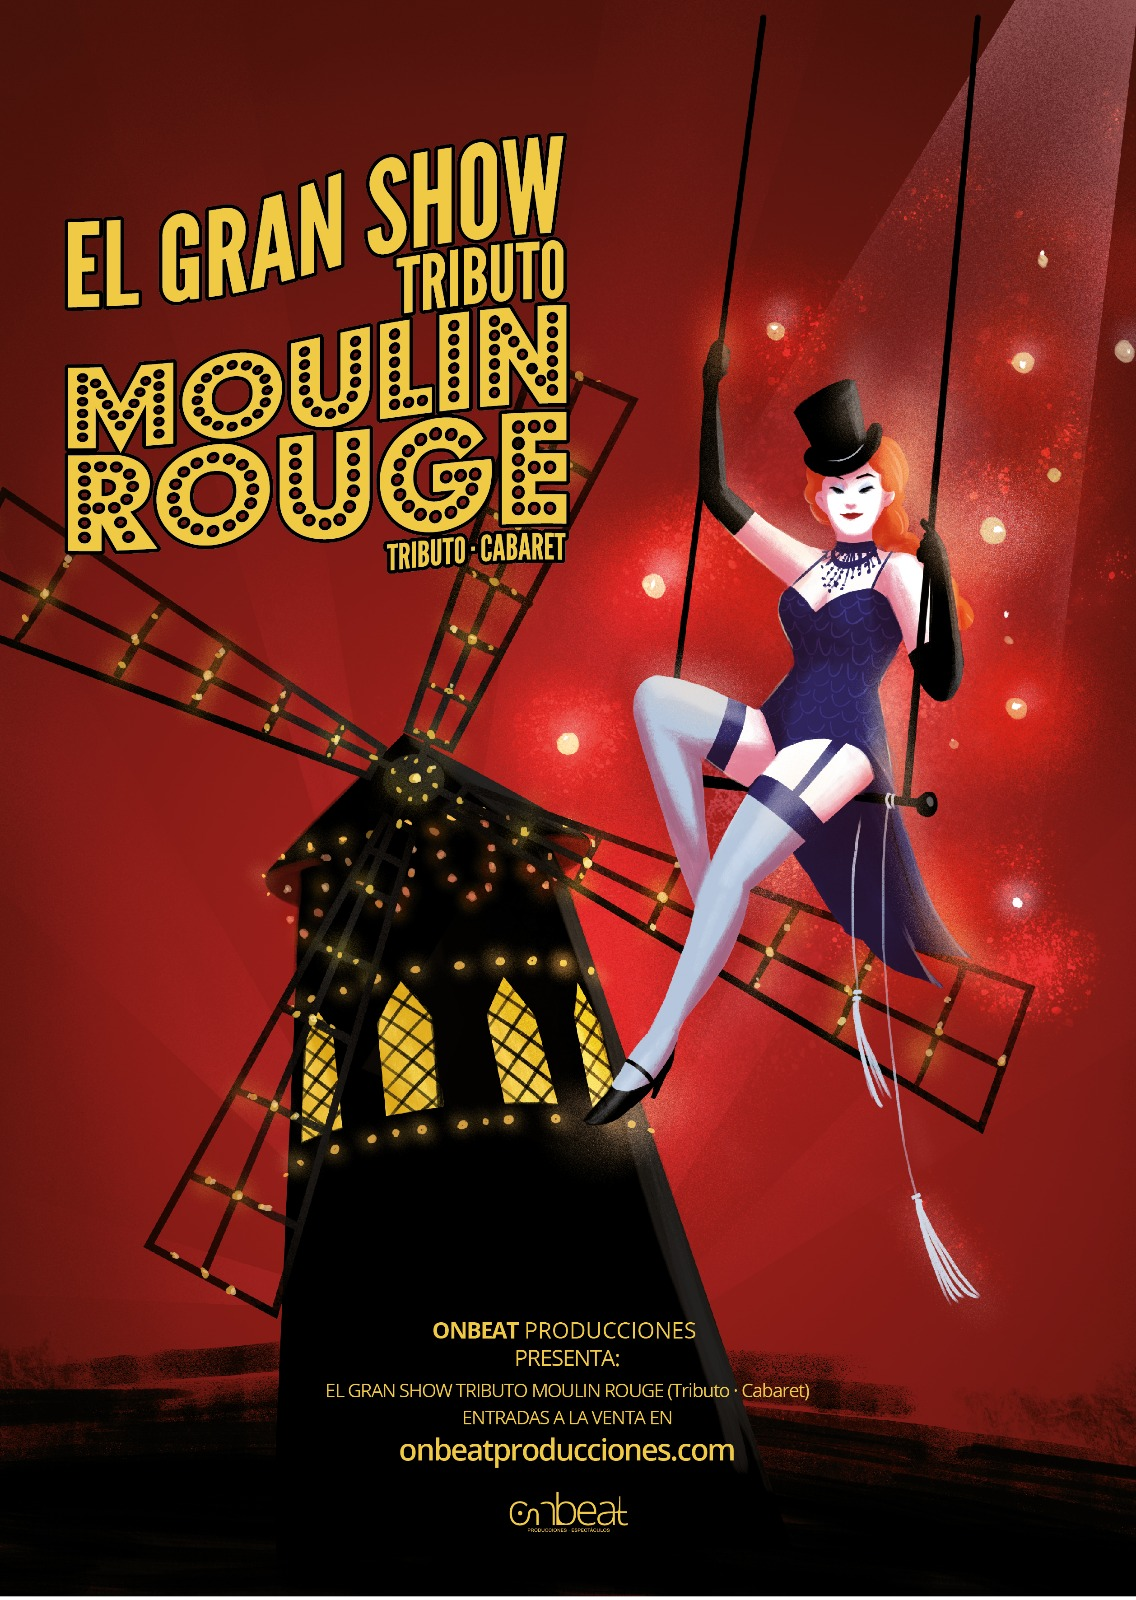 Moulin Rouge Libro El Gran Show Tributo A Moulin Rouge